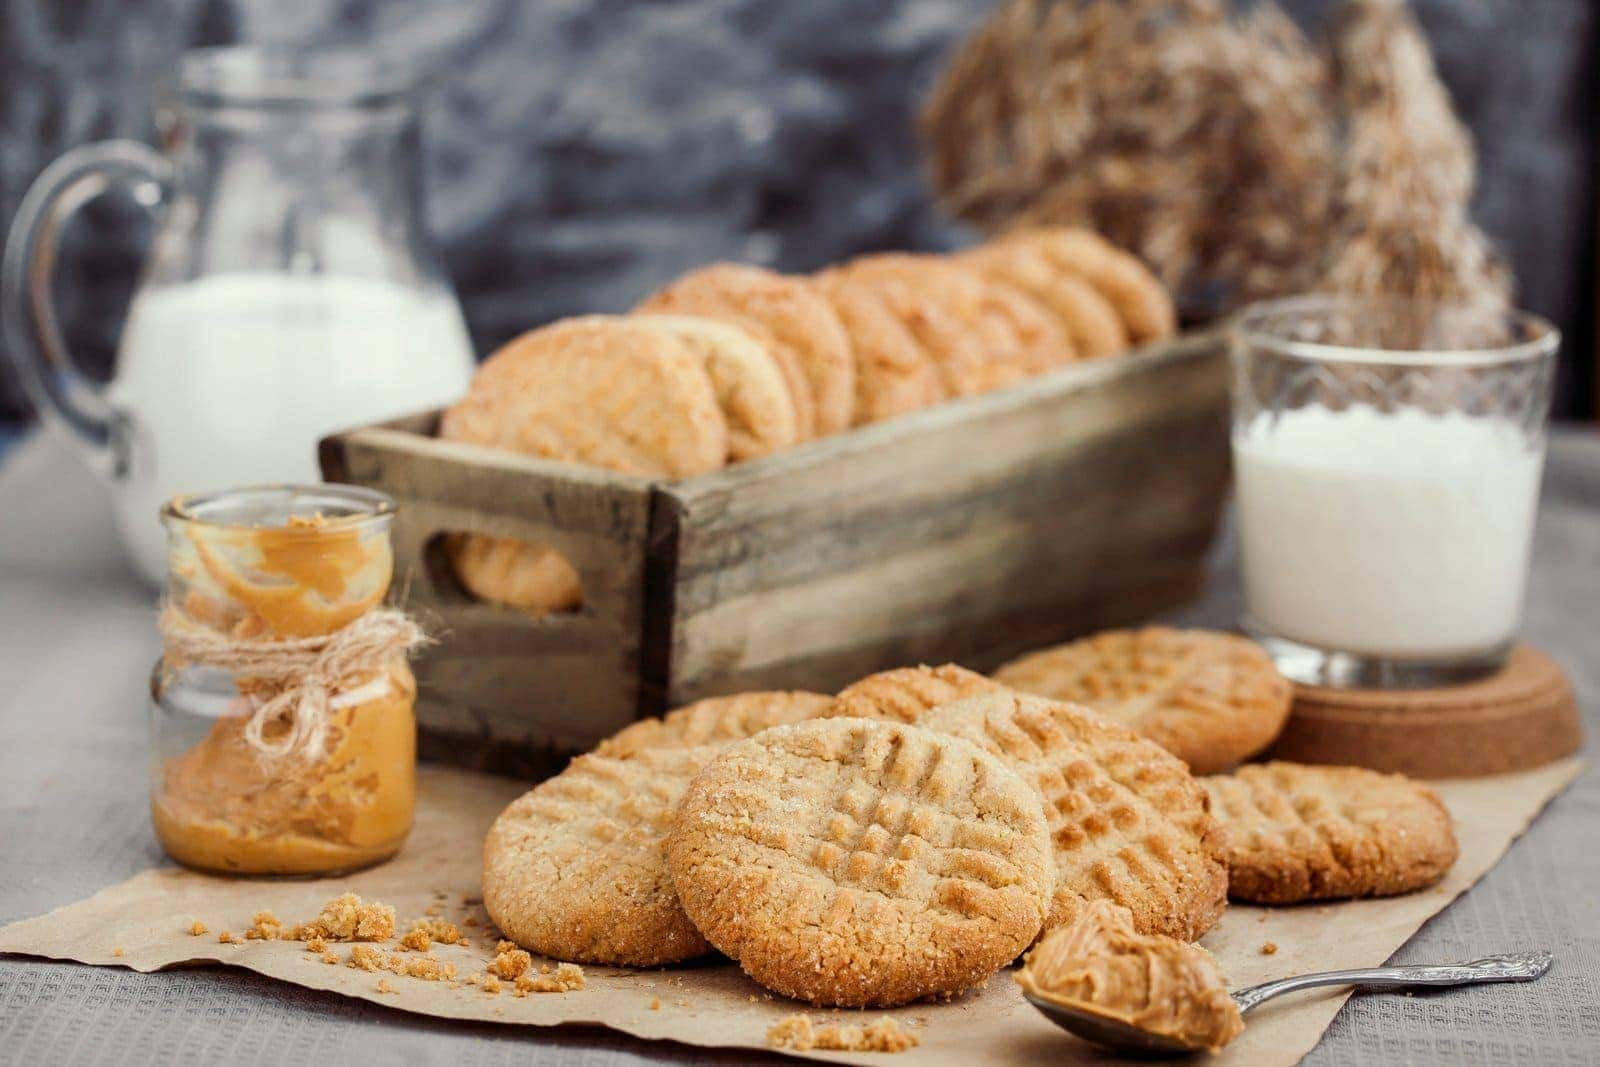 ld-fashioned peanut butter cookie recipes